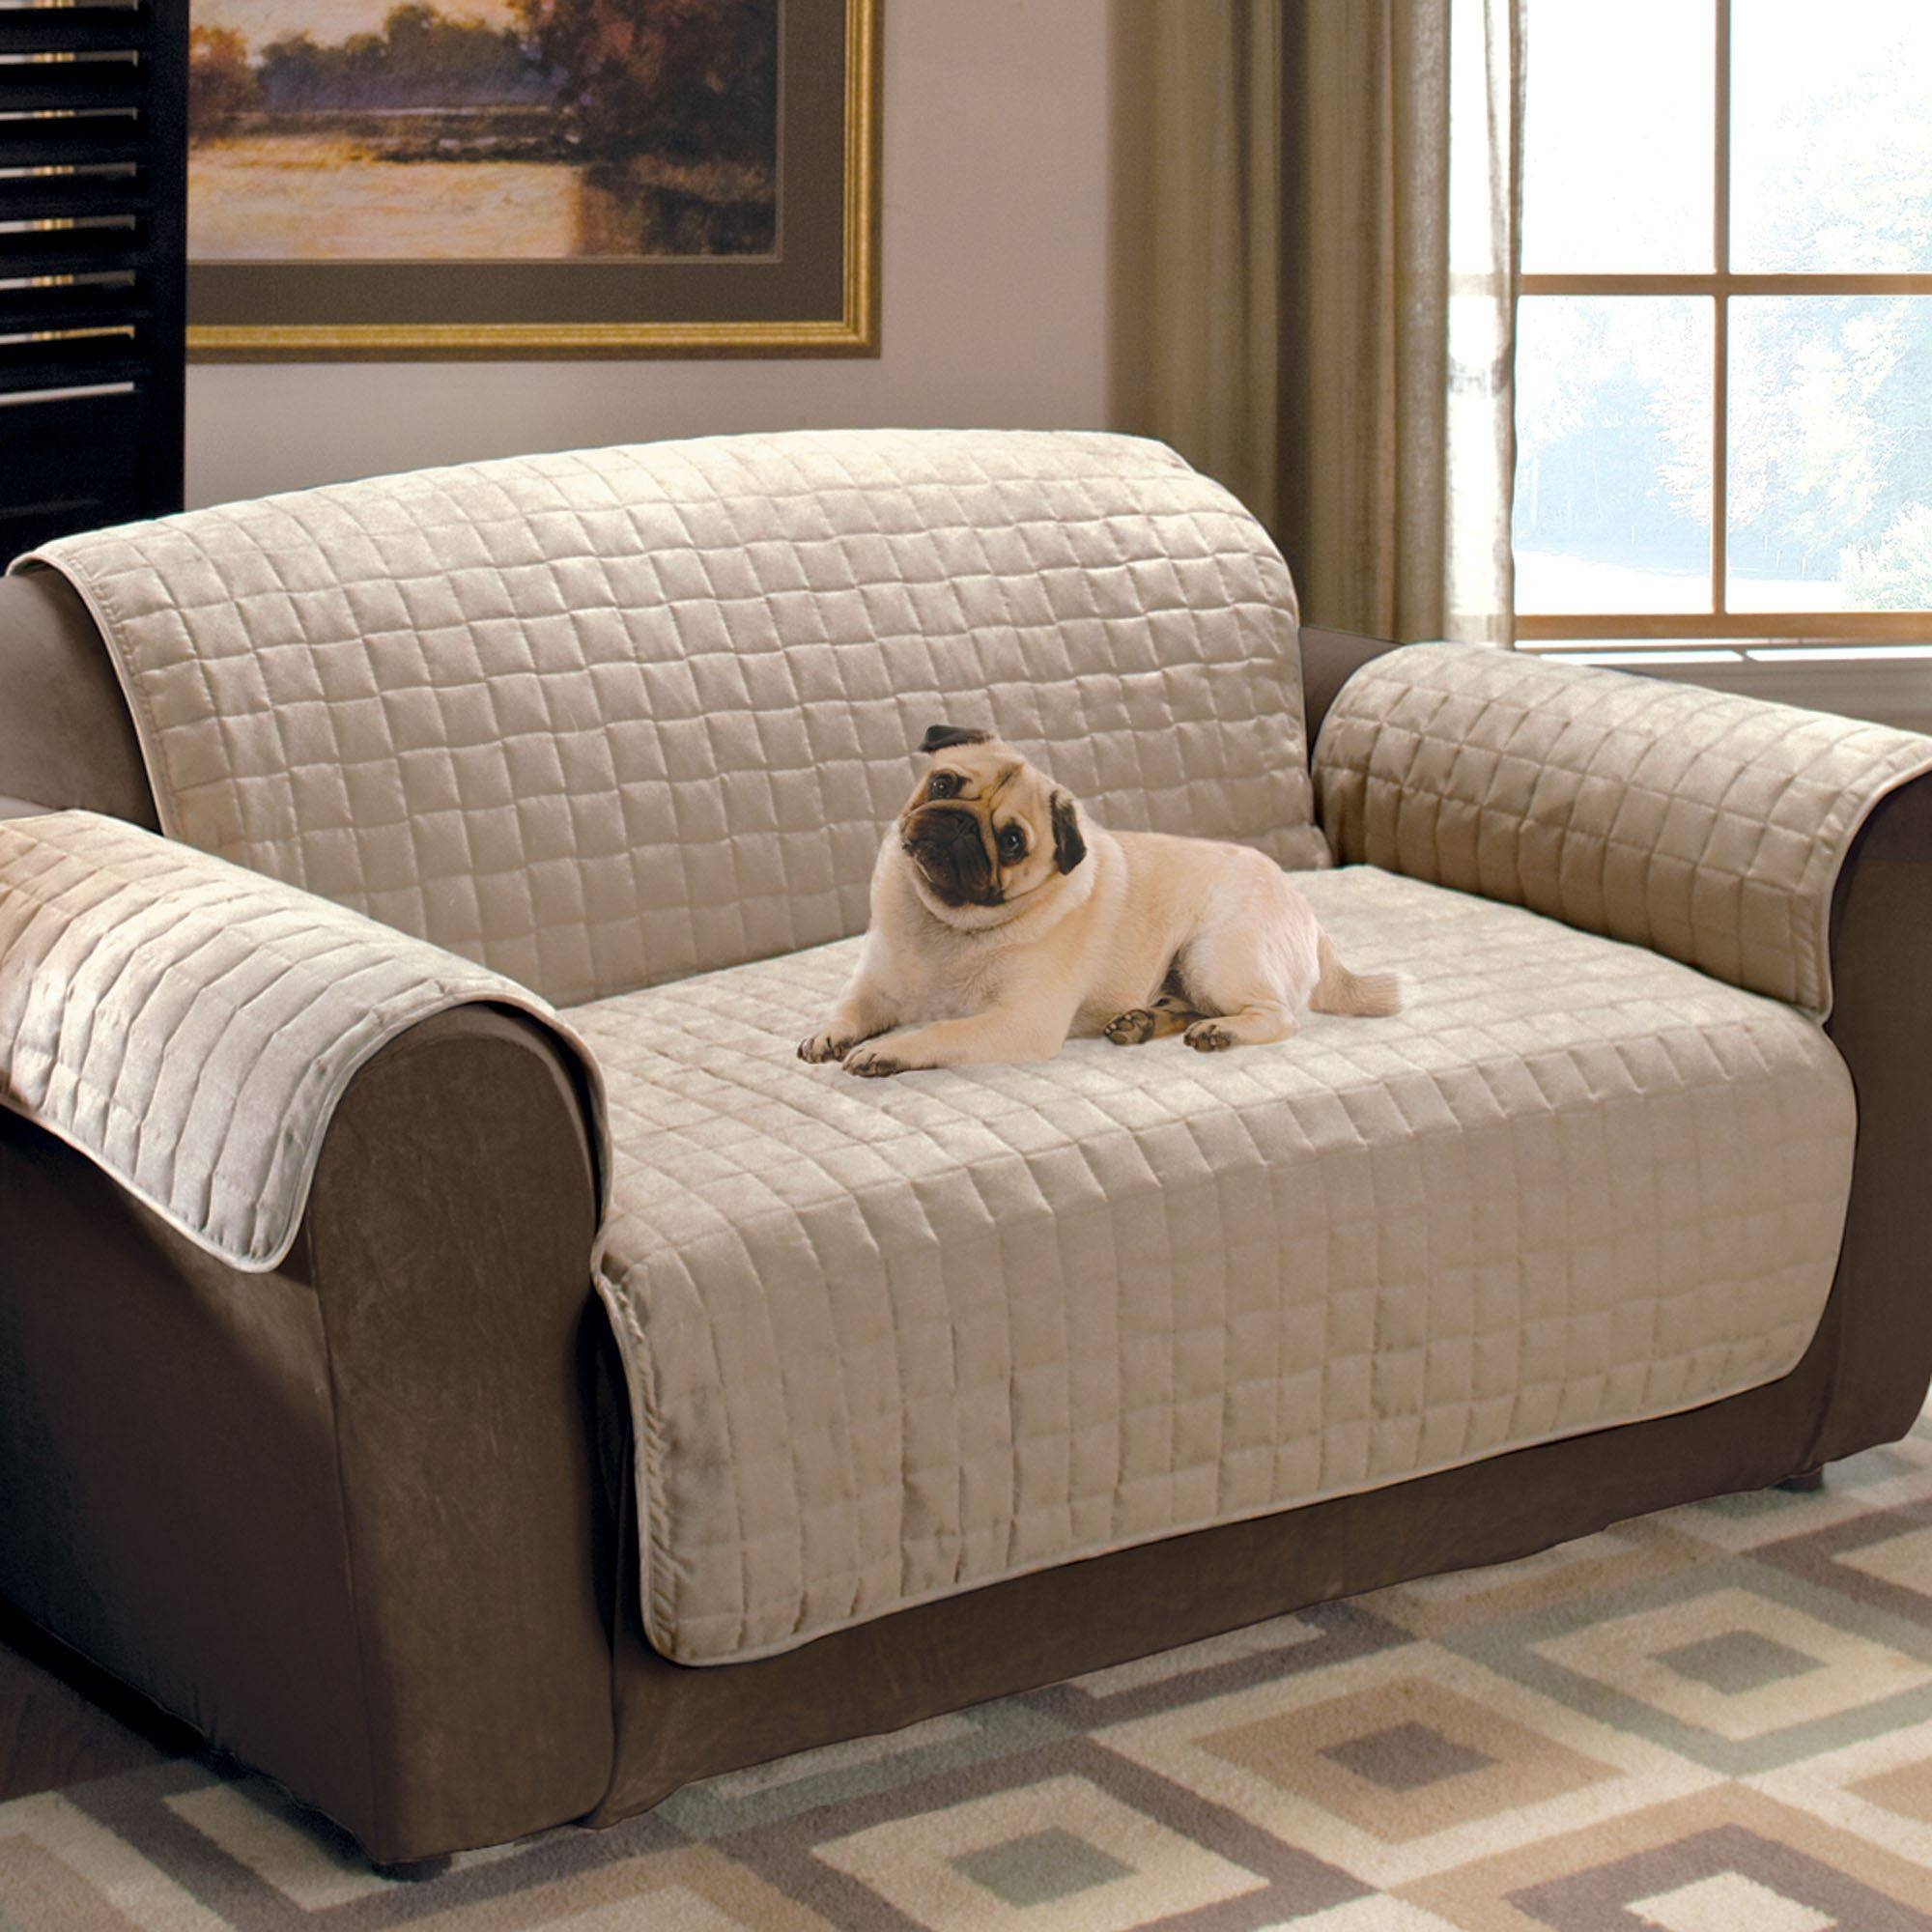 Sofa: Slipcover For Reclining Sofa | Double Recliner Sofa with regard to Slipcover for Reclining Sofas (Image 13 of 15)